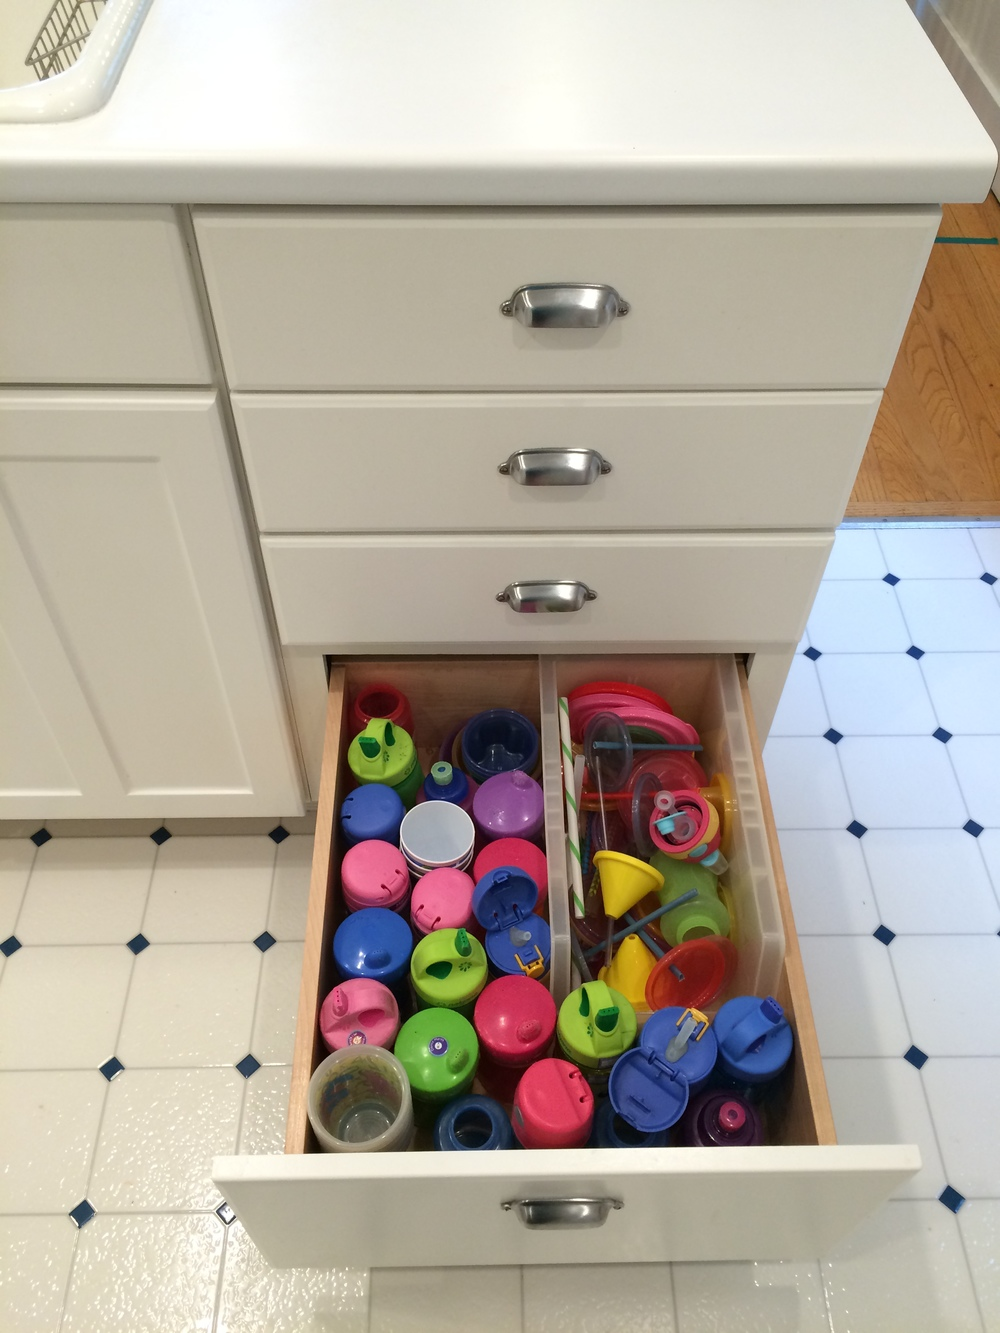 In the kitchen I keep all the kids cups and water bottles in a bottom drawer that they can reach. Up until very recently I also had plastic plates and bowls here, but we don't use them any more so they were cleaned out.  In the drawers above this I have dish towels, washcloths, and plastic bags & wraps.